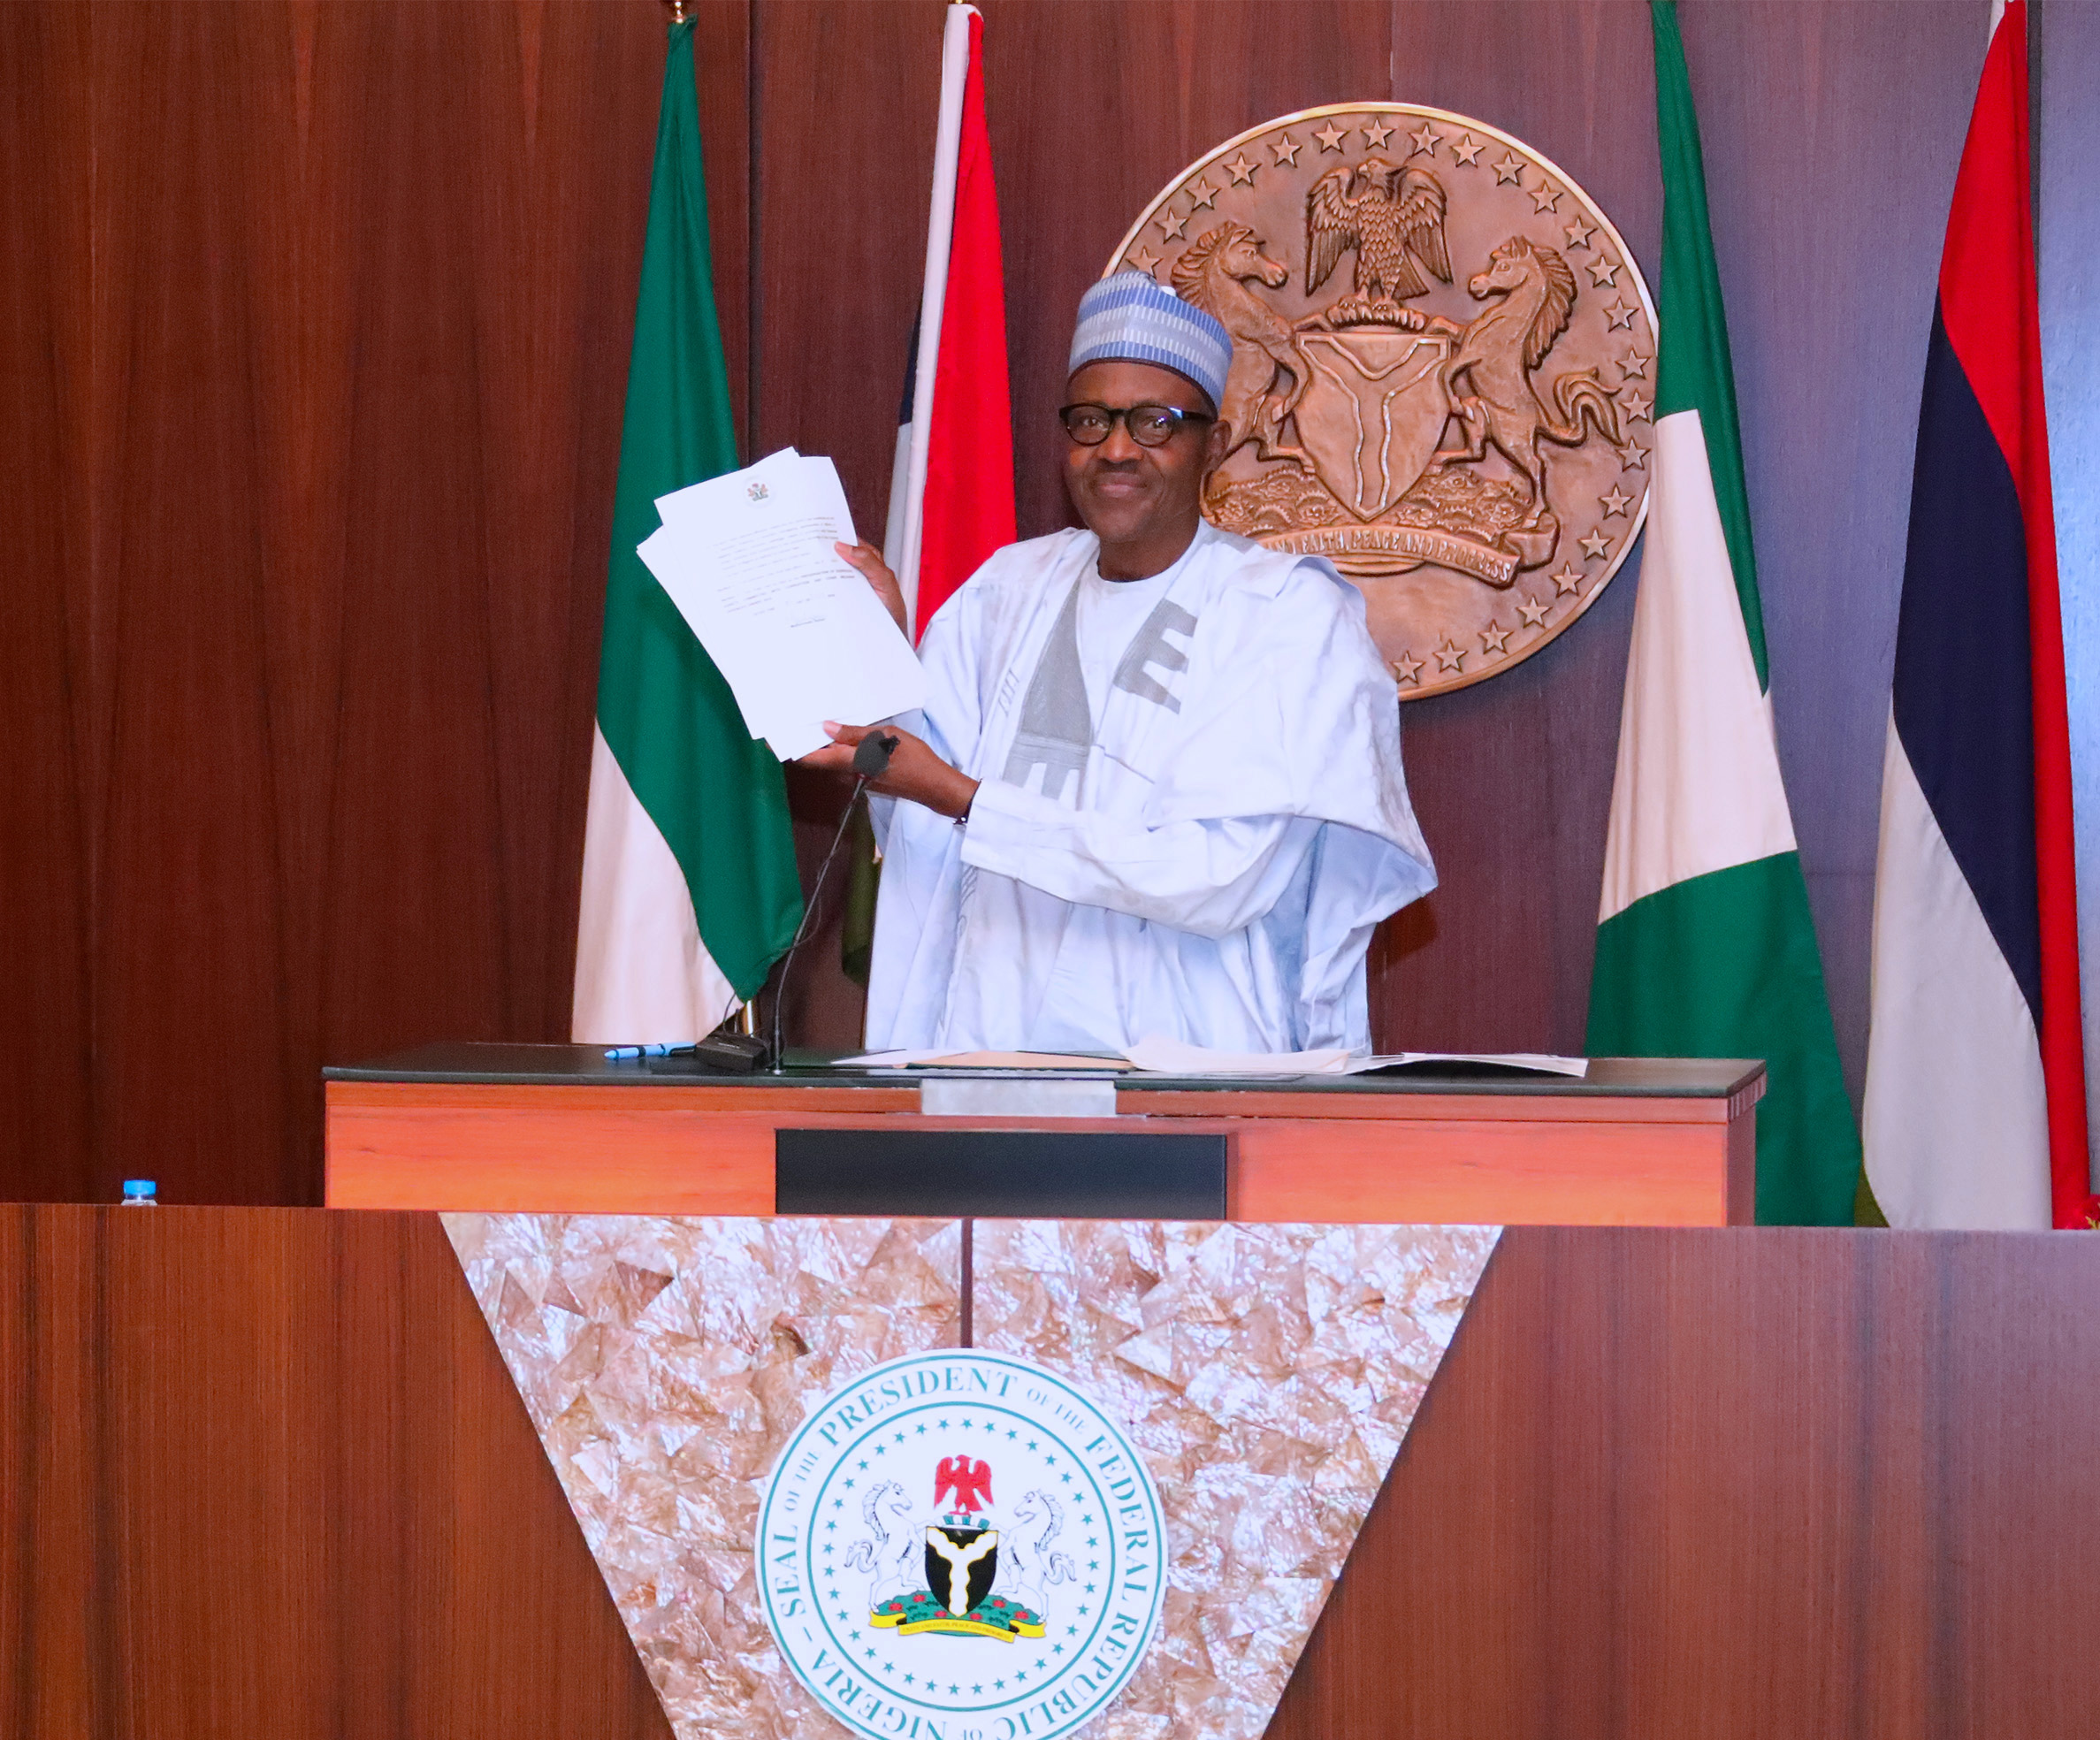 PRESIDENT BUHARI SIGNS EXECUTIVE ORDER 6 PIC 2B. President Muhammadu Buhari signs into Law Executive Order 6 on the Preservation of Suspicious Assets Connected with Corruption held at the Council Chambers State House, Abuja. PHOTO; SUNDAY AGHAEZE. JULY 5 2018.